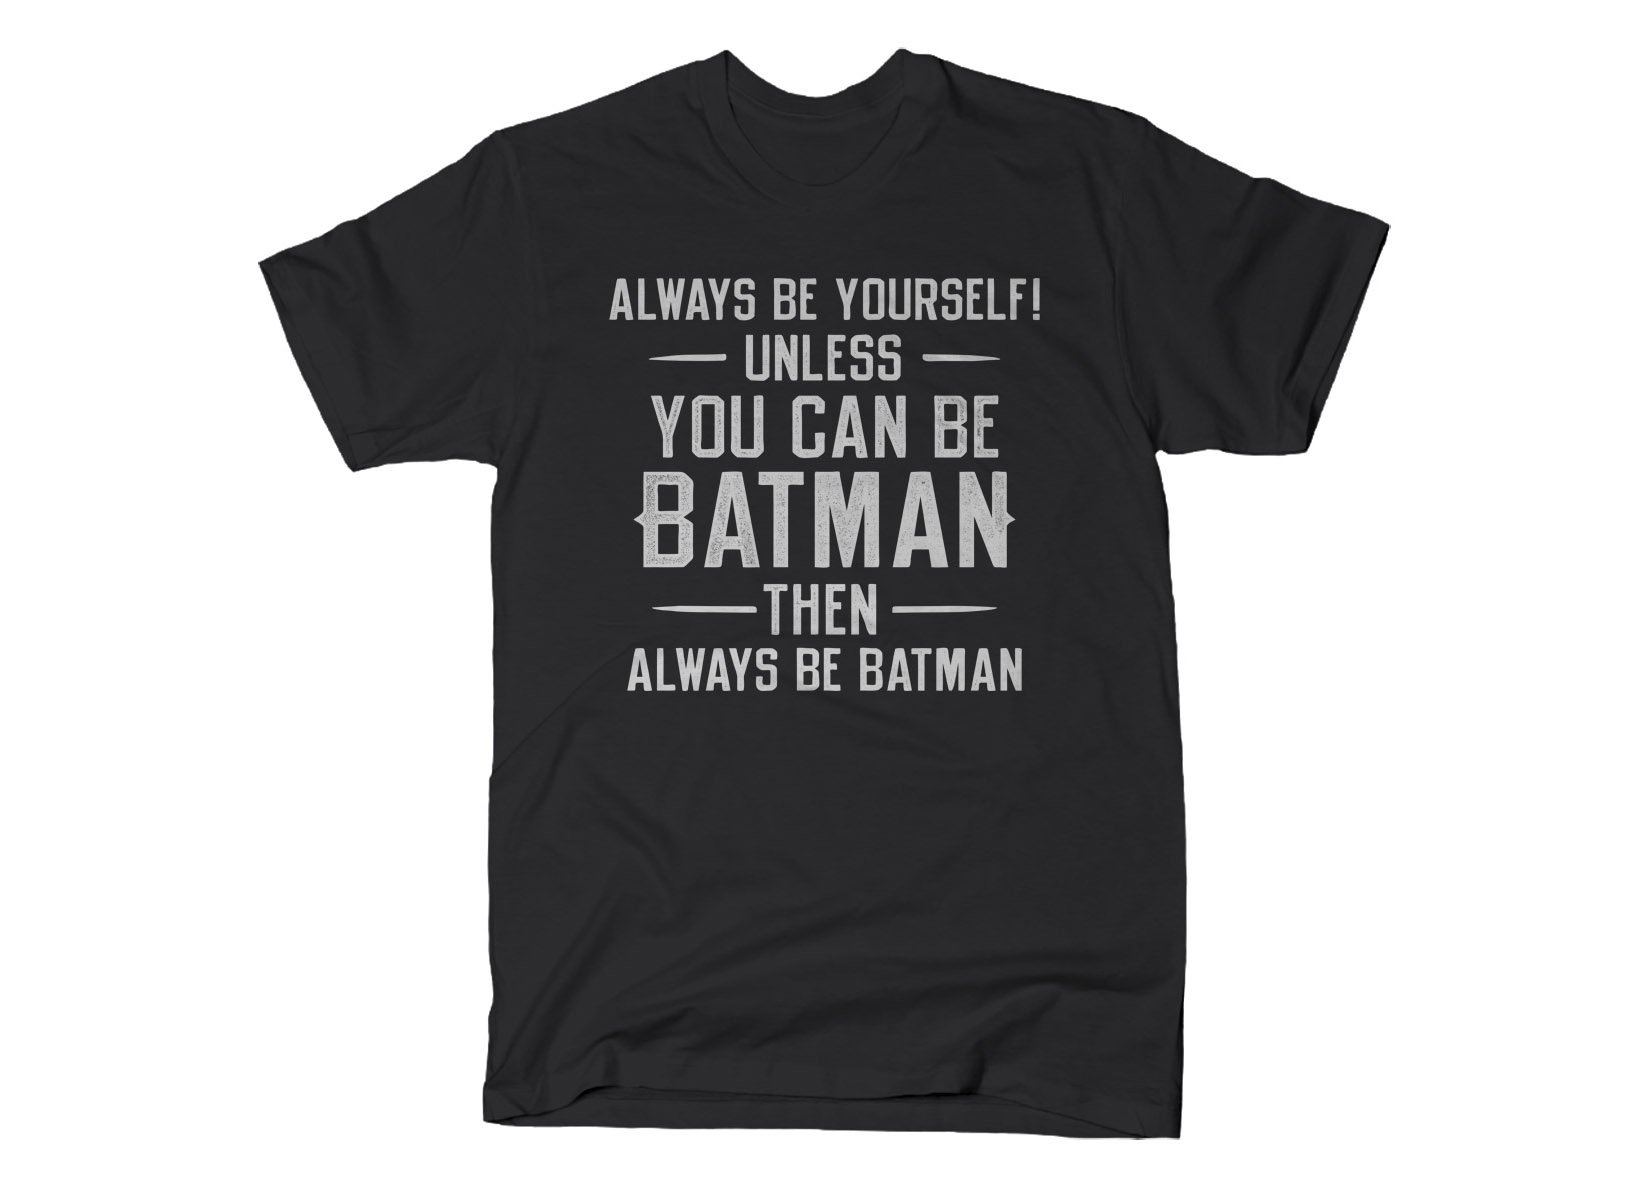 d7db7e9aa Always Be Yourself T-Shirt | SnorgTees